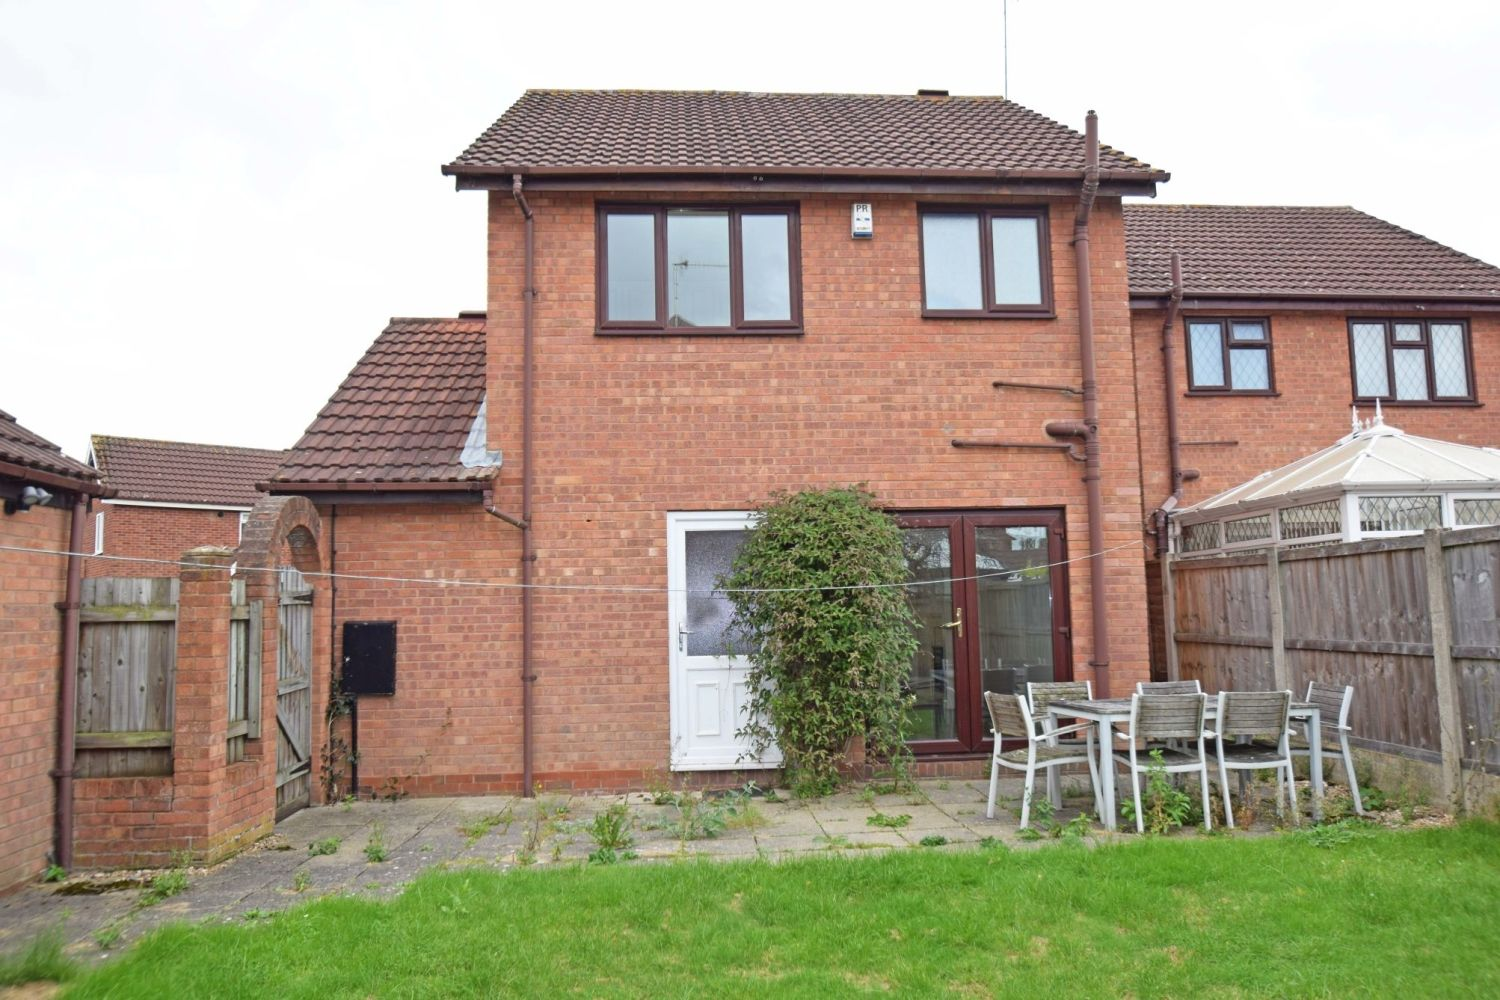 3 bed detached for sale in Avon Close, Stoke Heath, Bromsgrove, B60  - Property Image 13